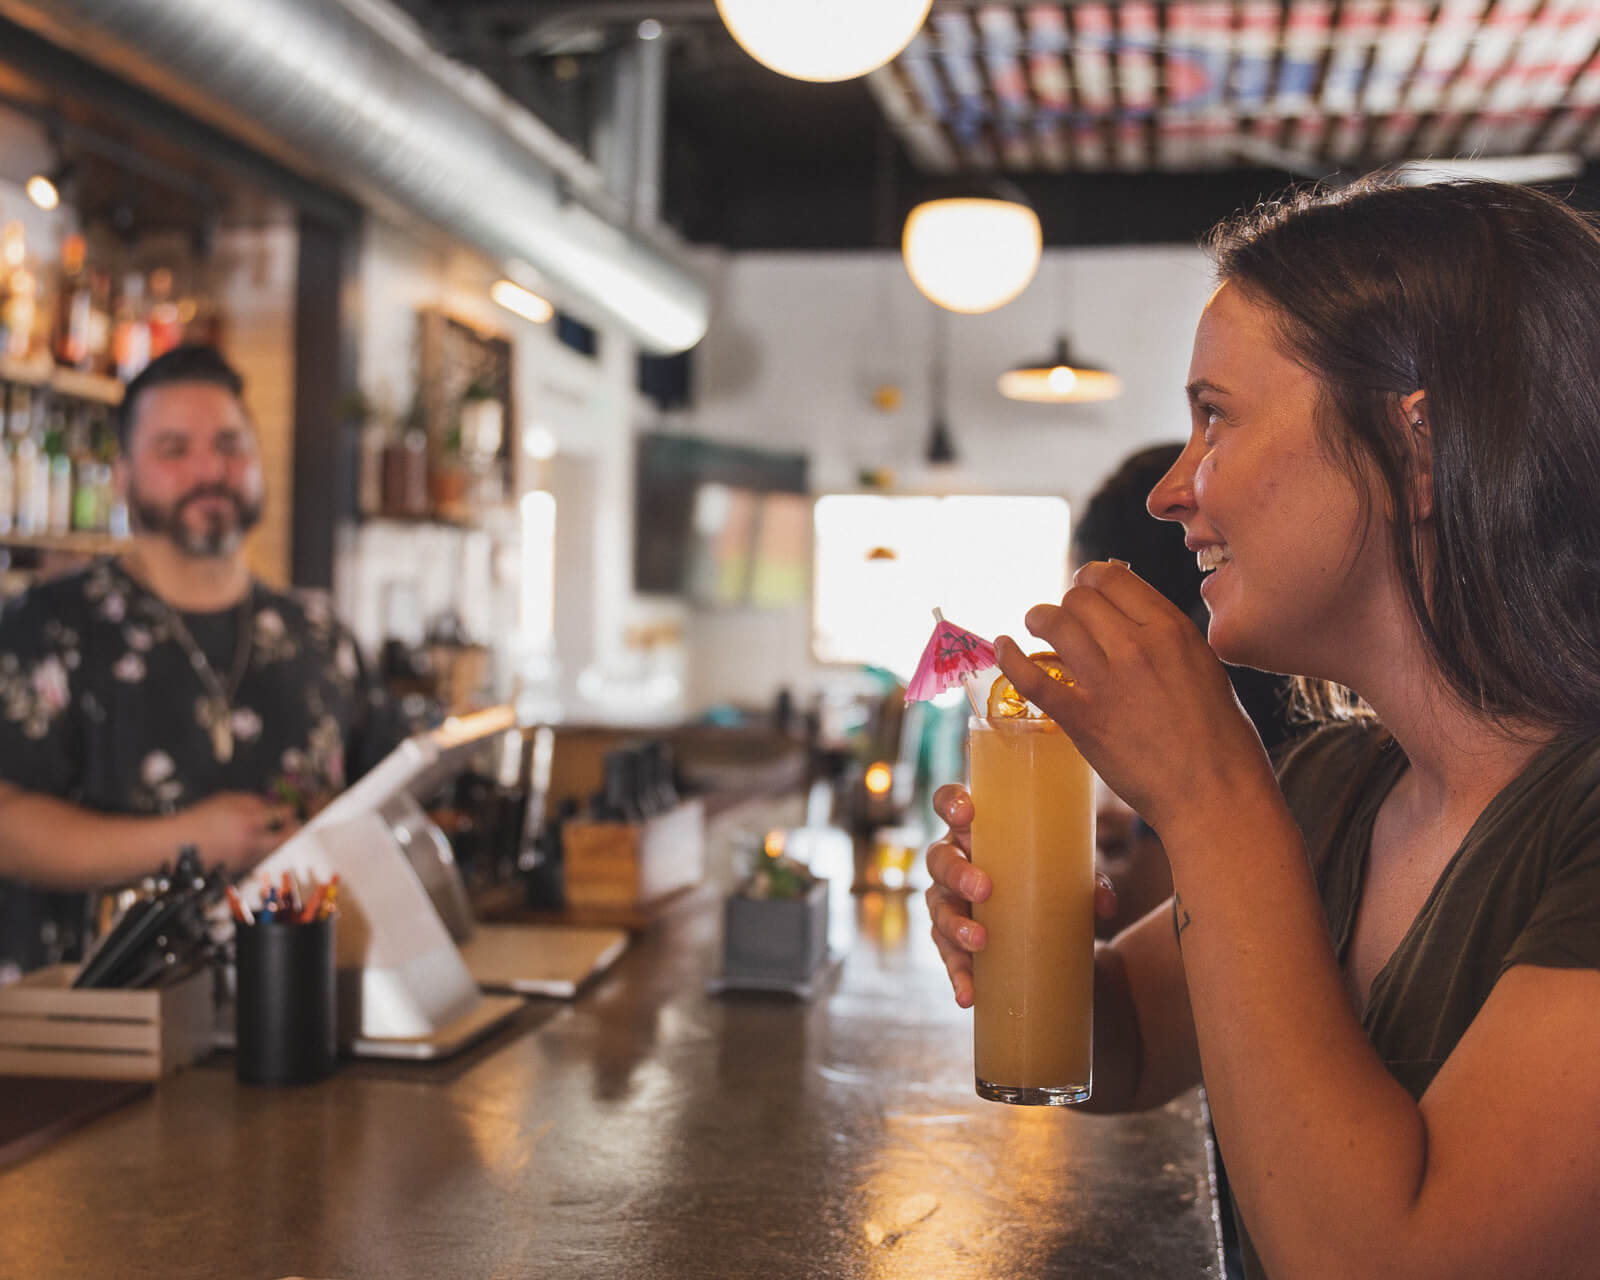 a bartender is serving a guest a tiki drink at the bar